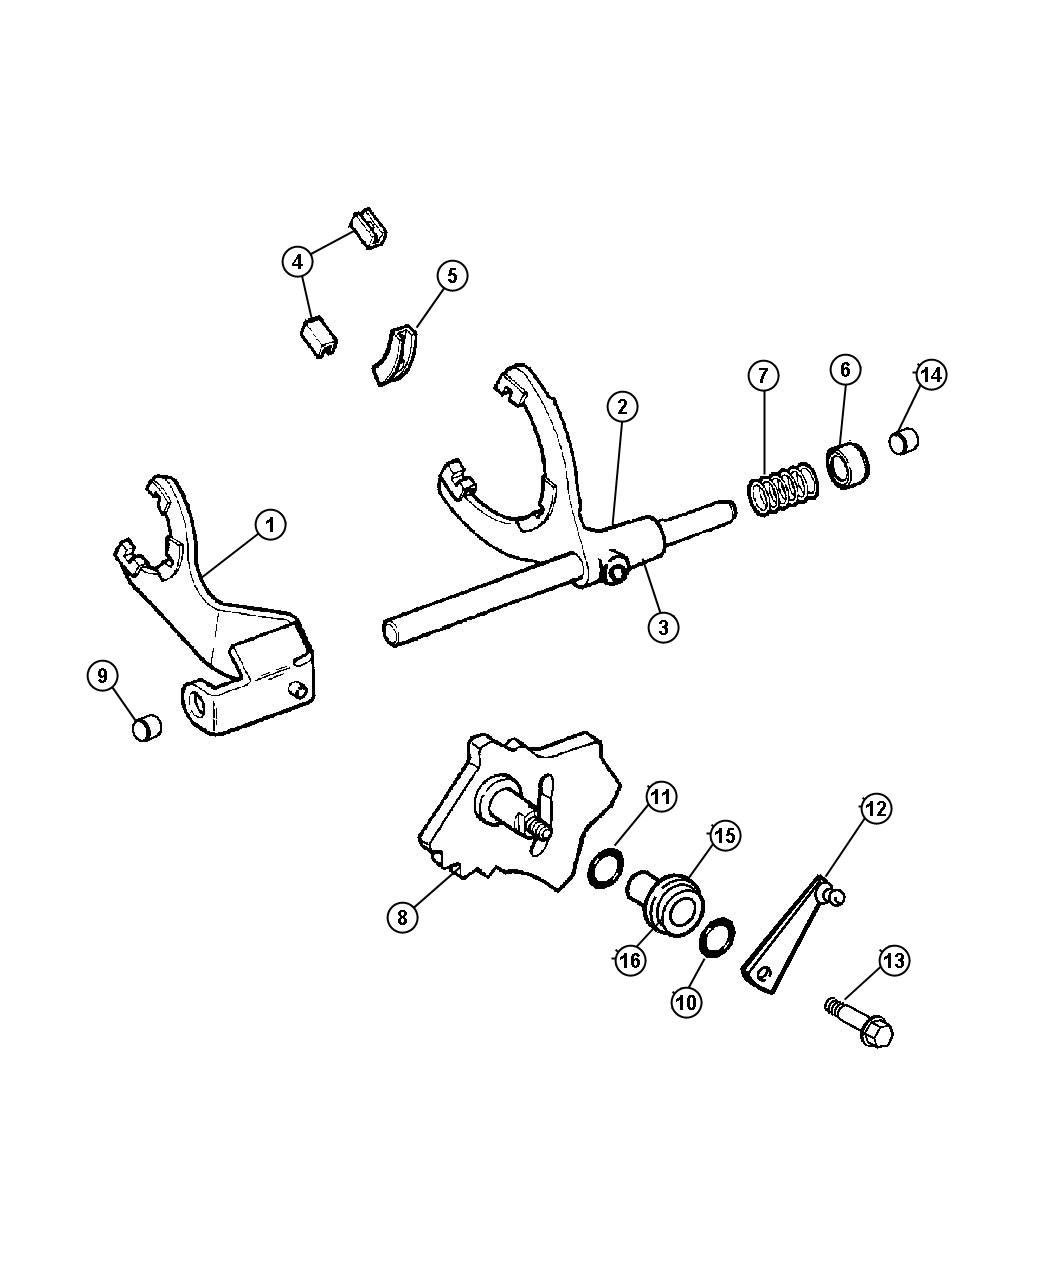 Jeep Wrangler Seal. Gearshift lever. Moduleman, dhw, iion